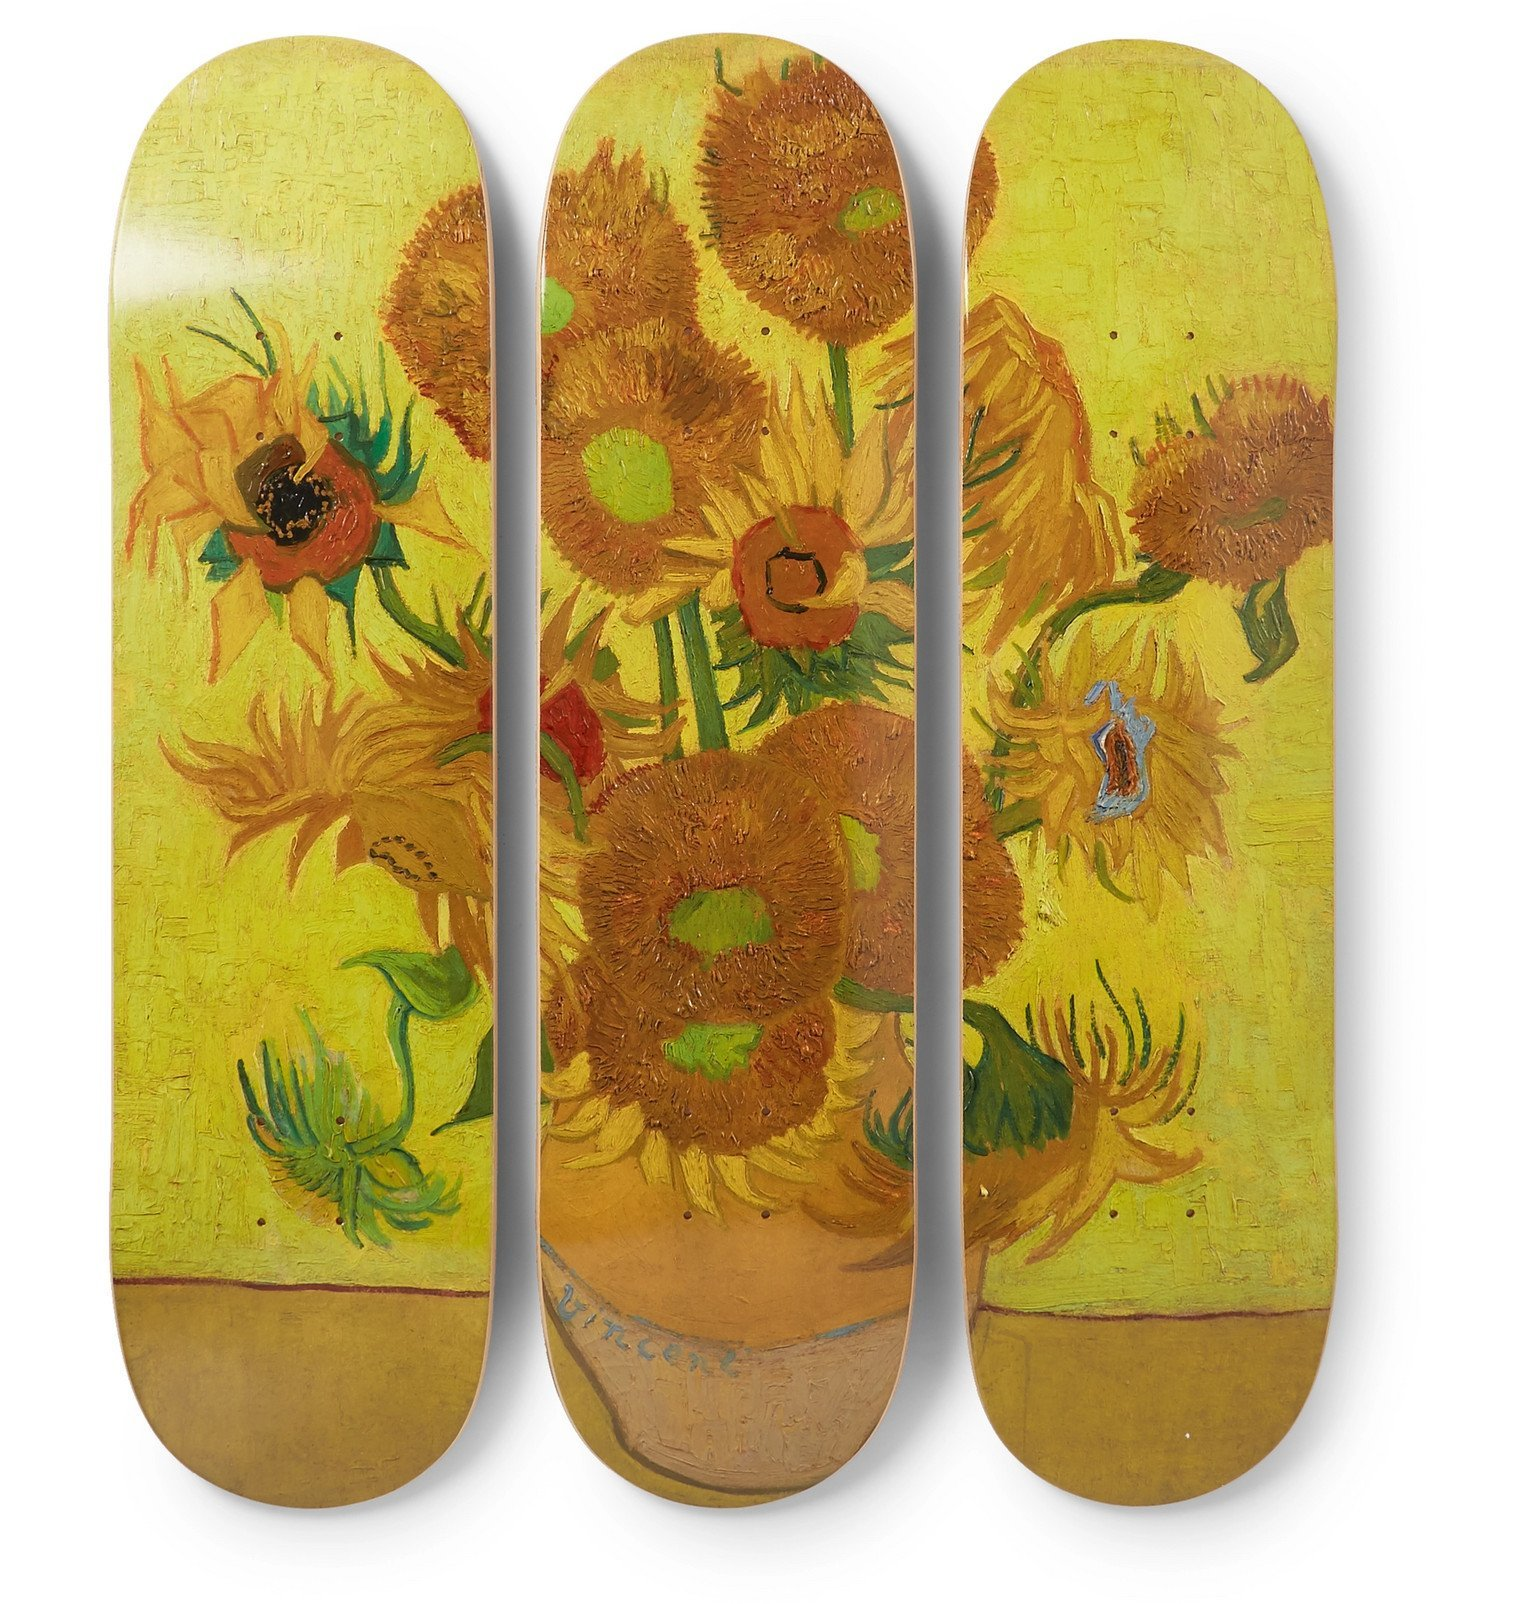 Photo: The SkateRoom - Vincent Van Gogh Set of Three Printed Wooden Skateboards - Yellow